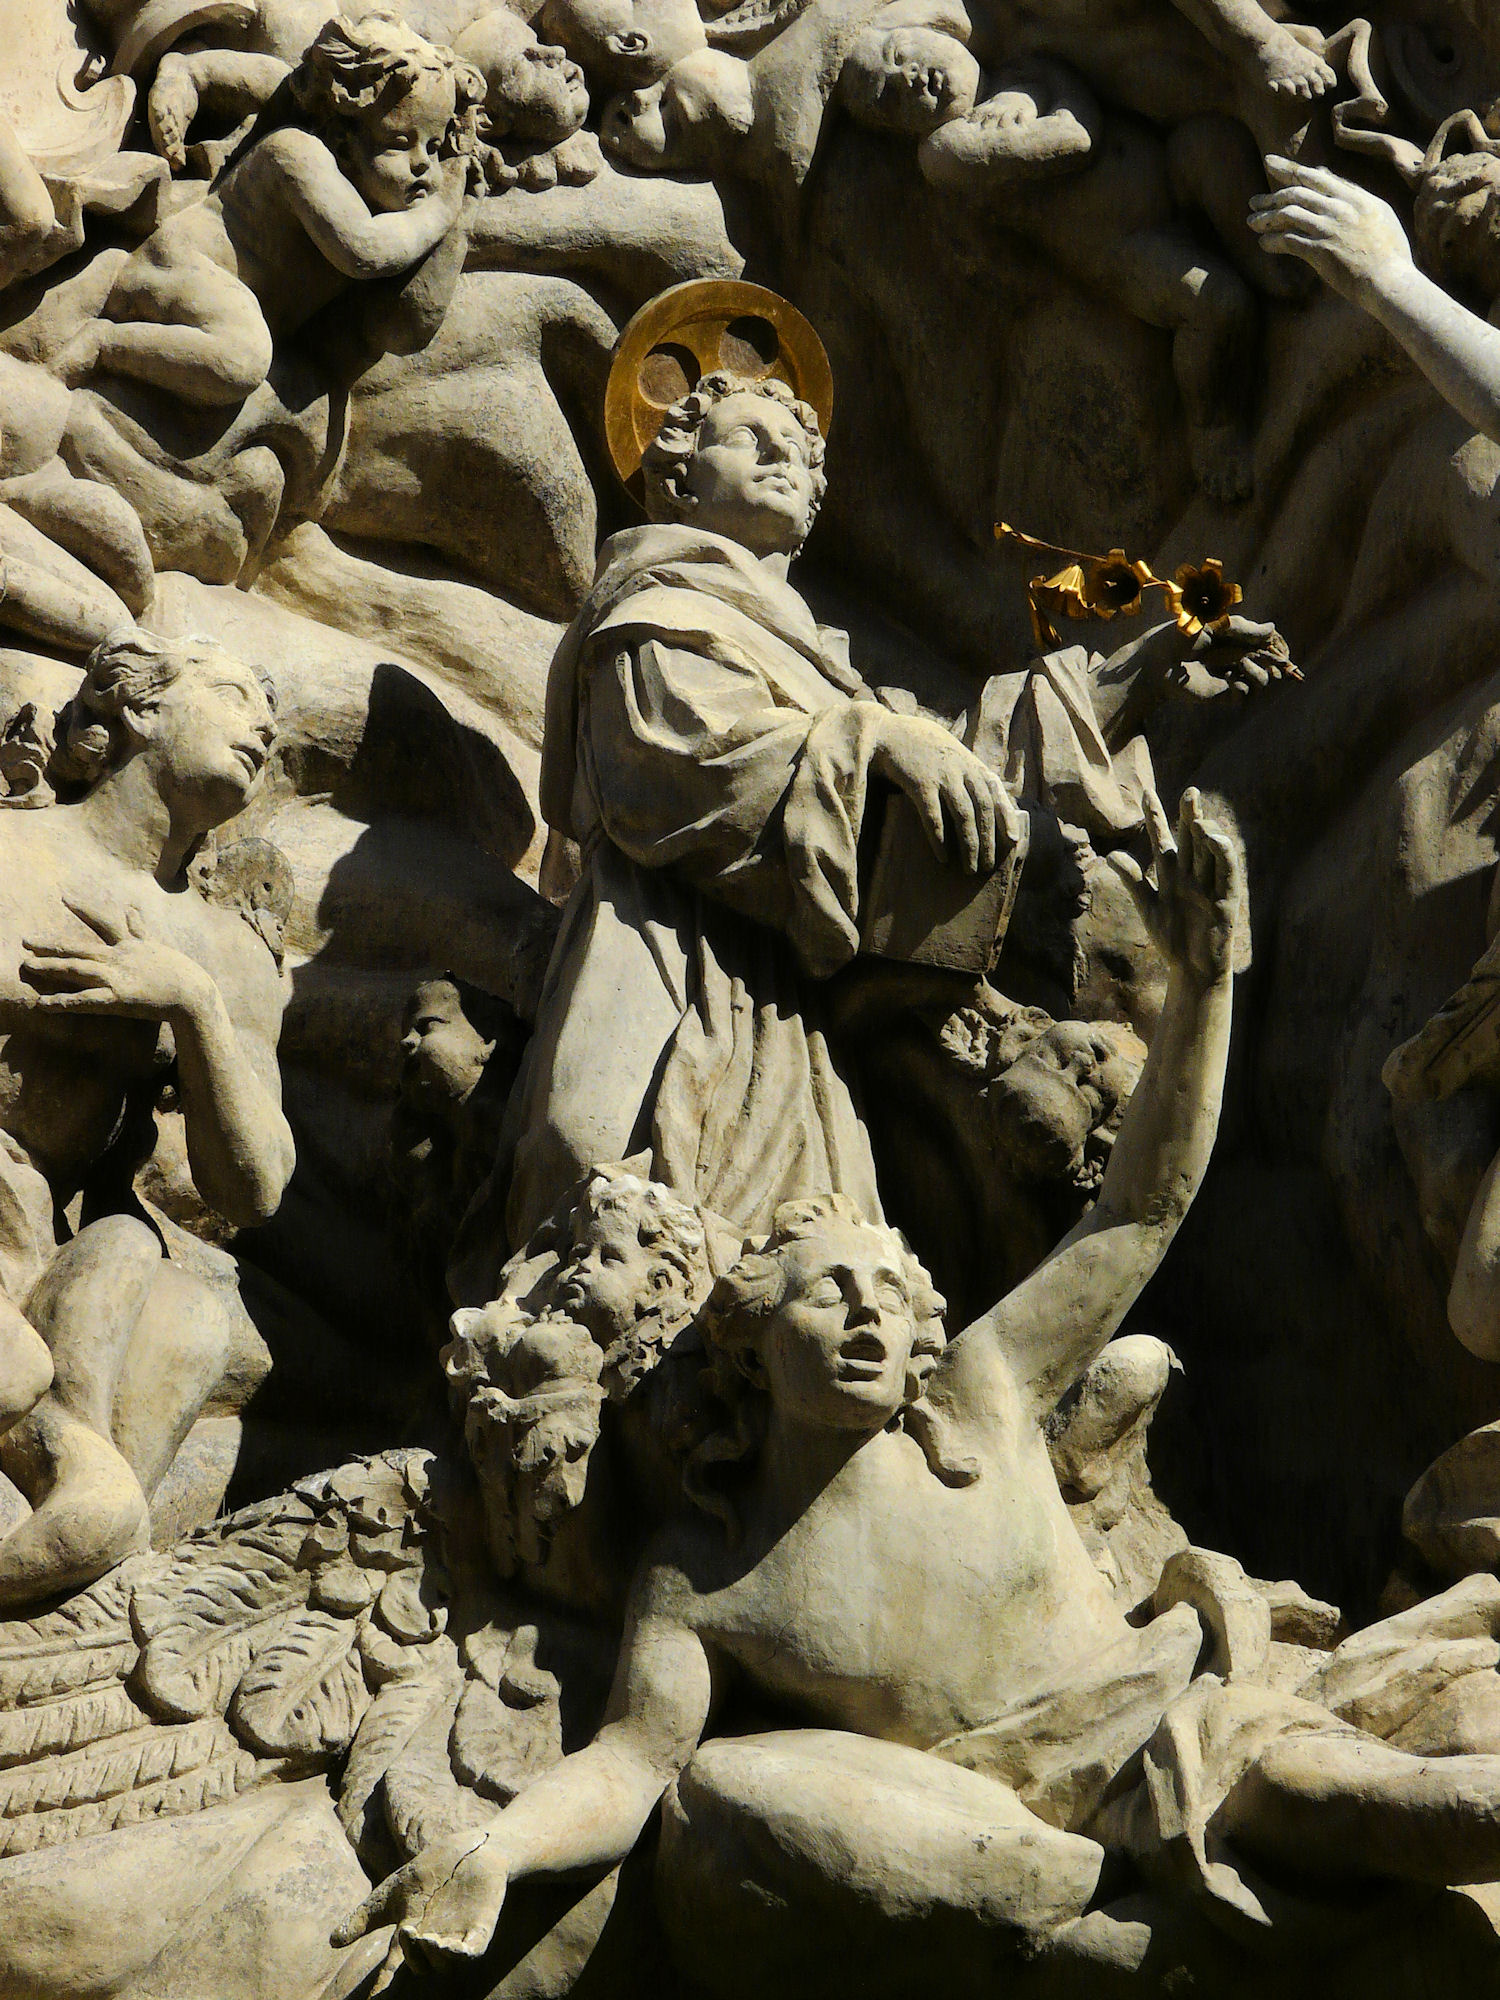 Baroque sculpture, Church of St James, Prague